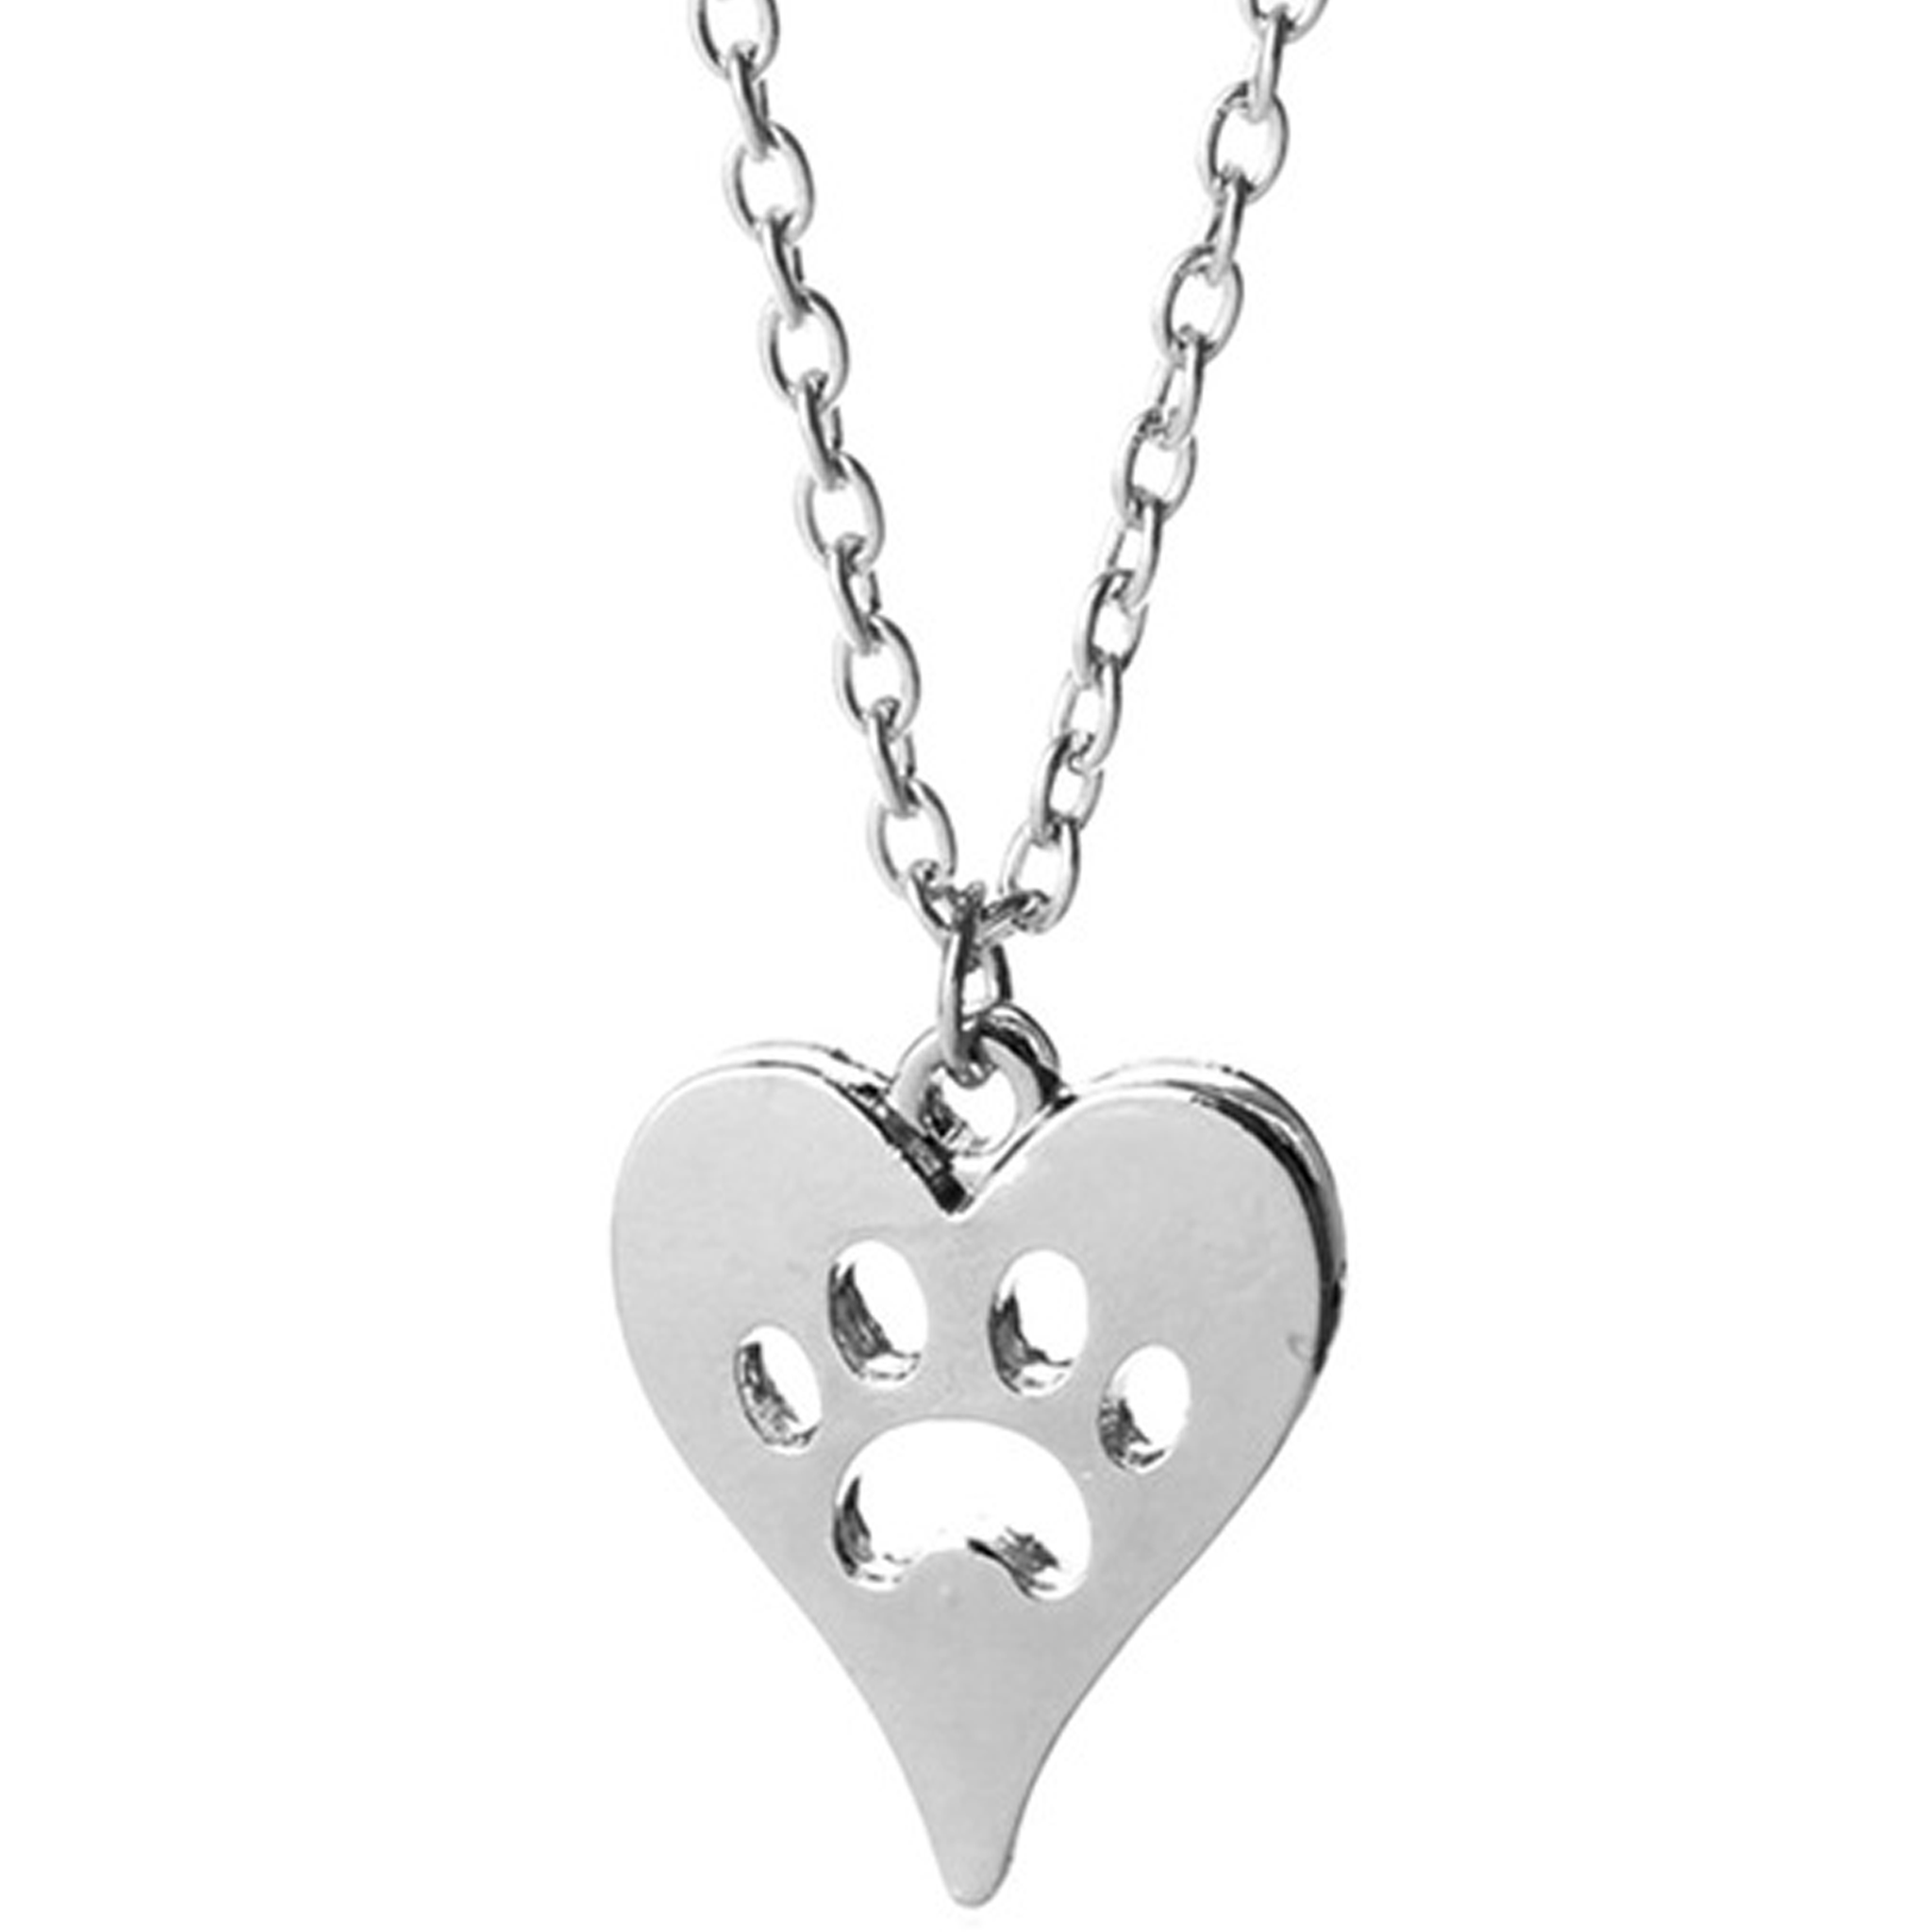 Paw Print Heart Necklace - www.JoyFromCats.com